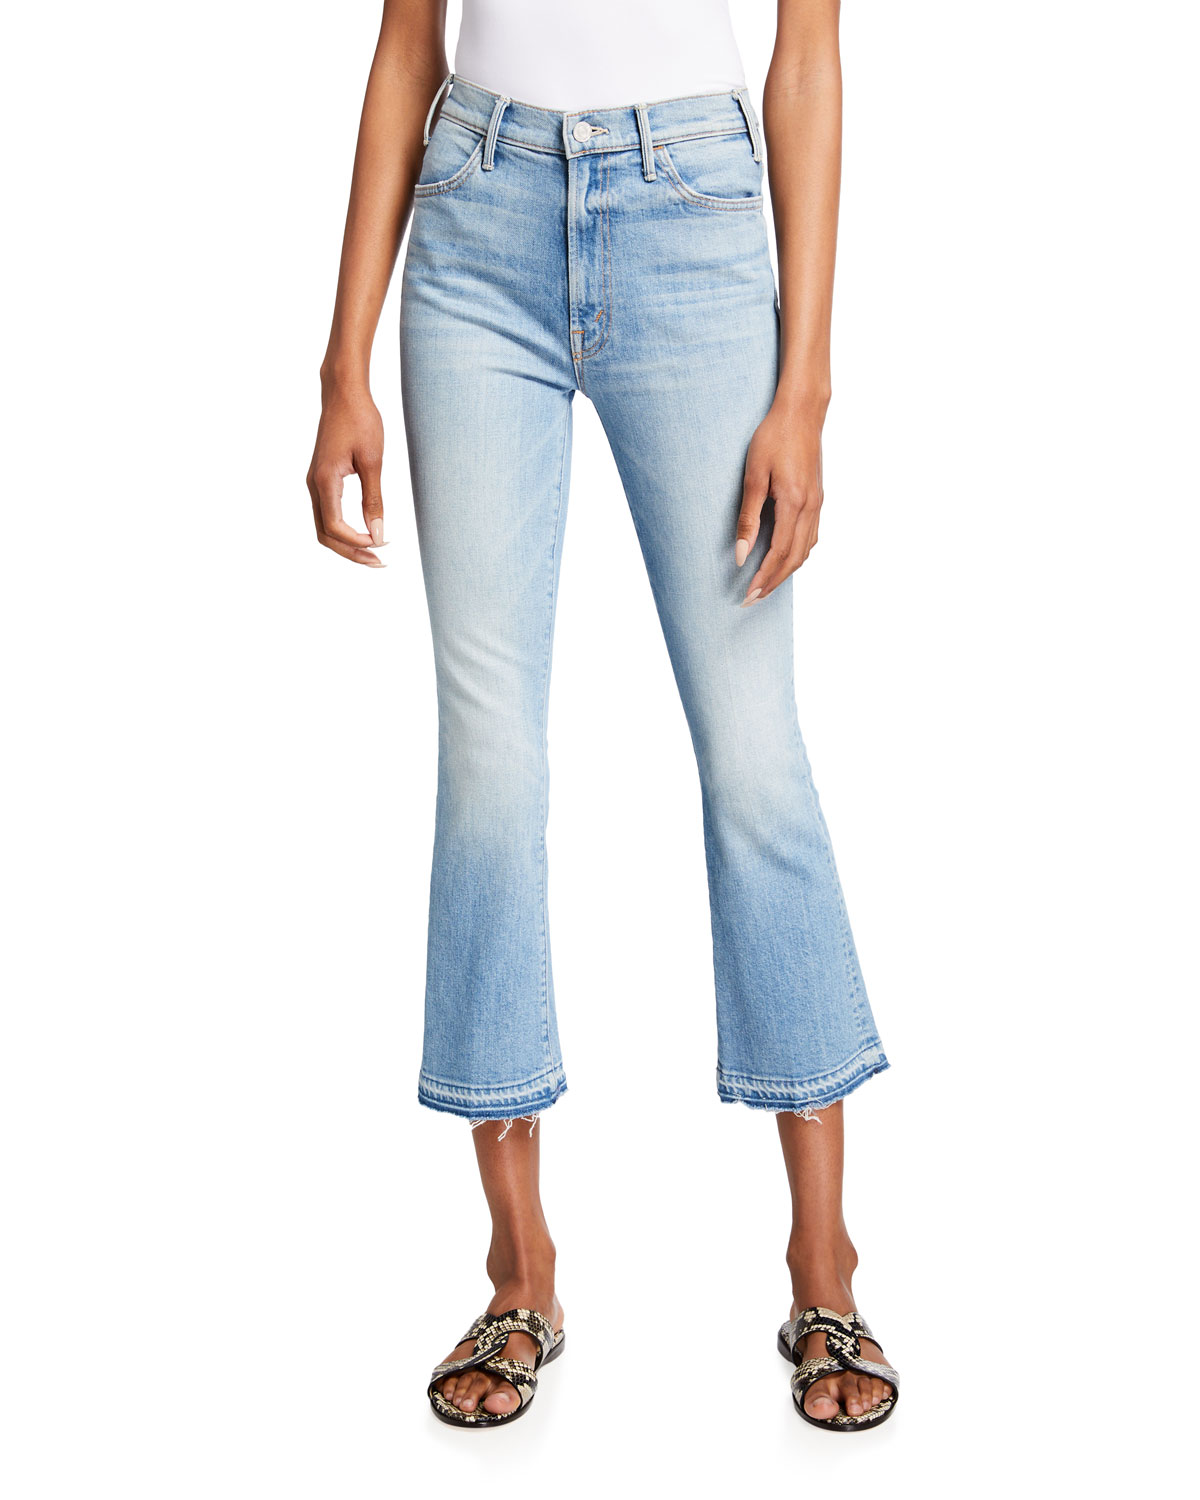 The Hustler Ankle Jeans with Undone